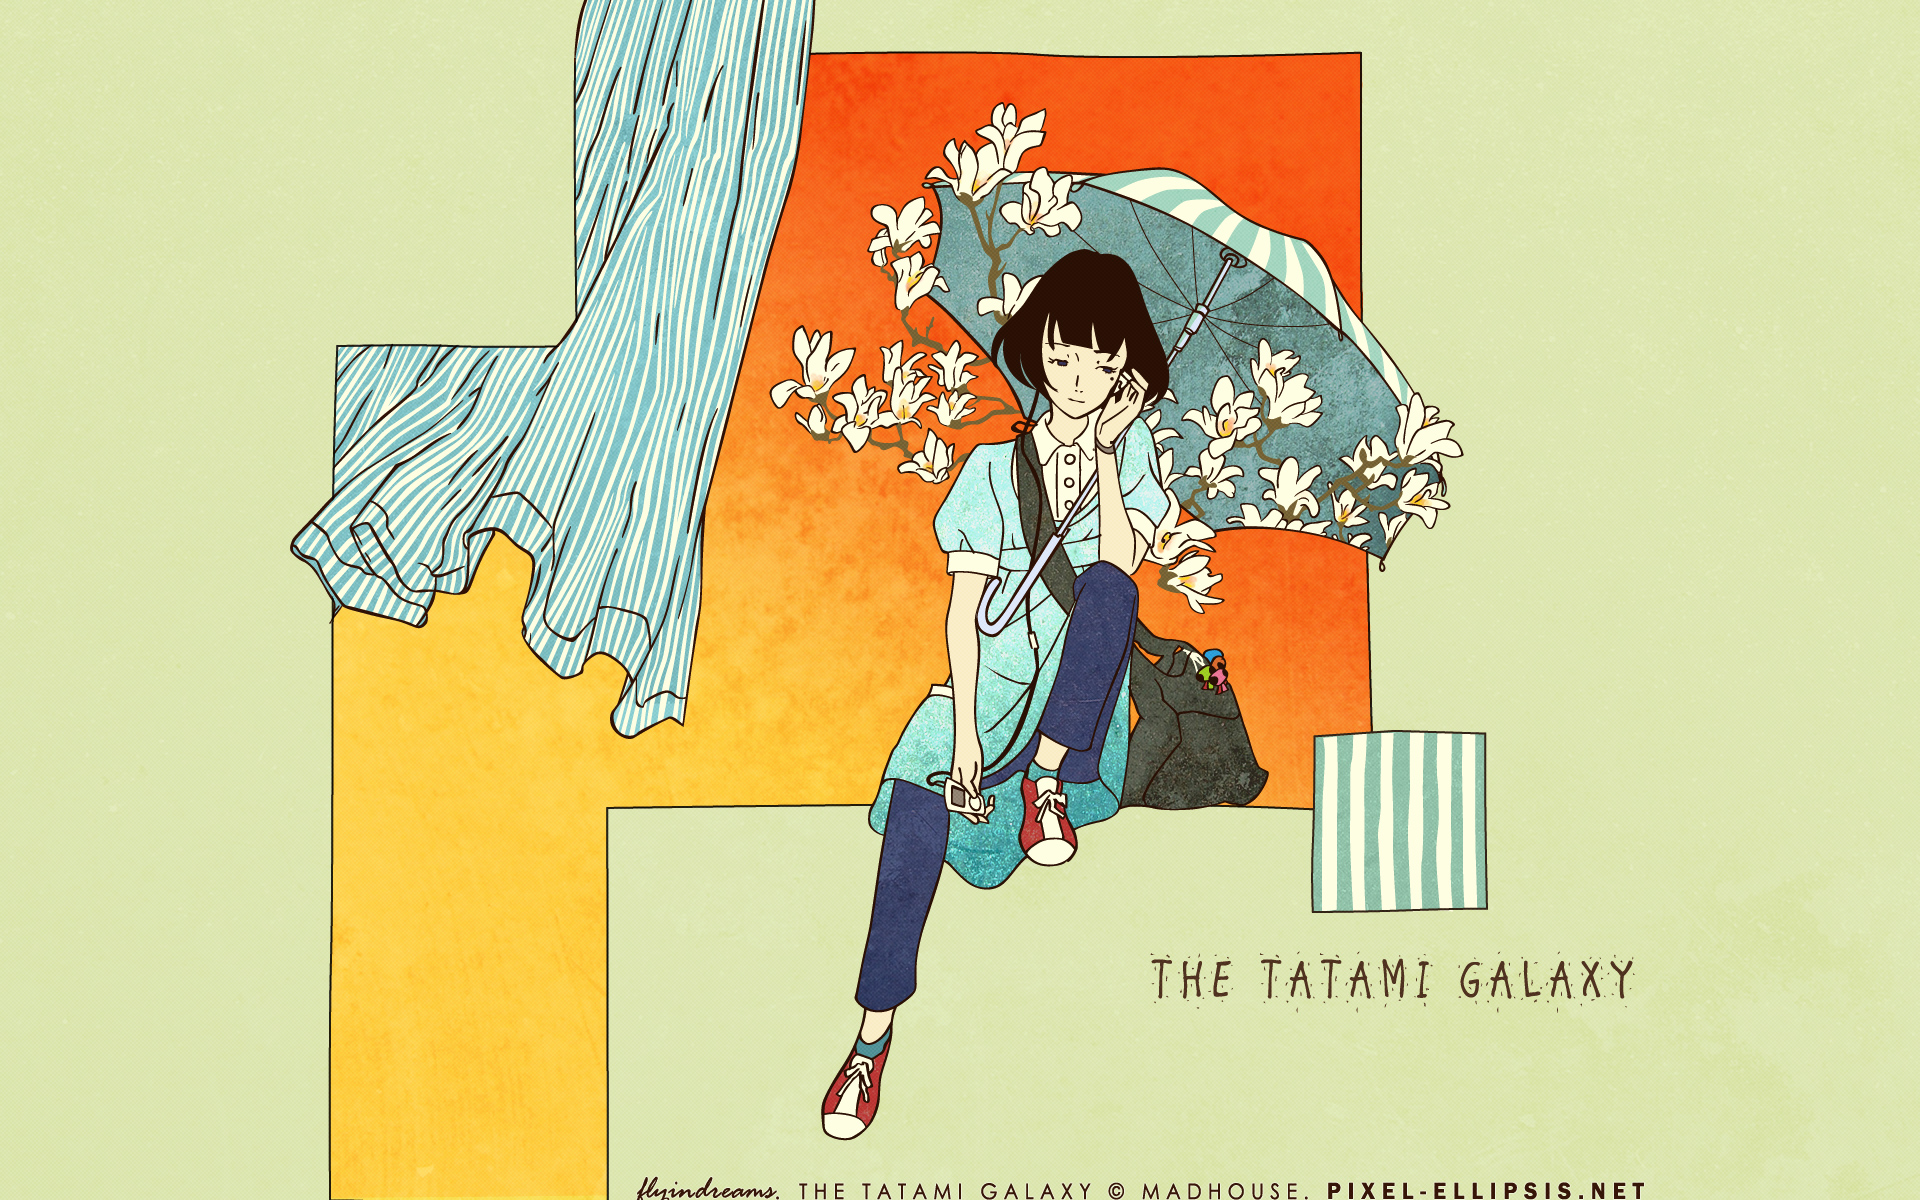 Cool Lion Wallpapers Hd The Tatami Galaxy Full Hd Wallpaper And Background Image